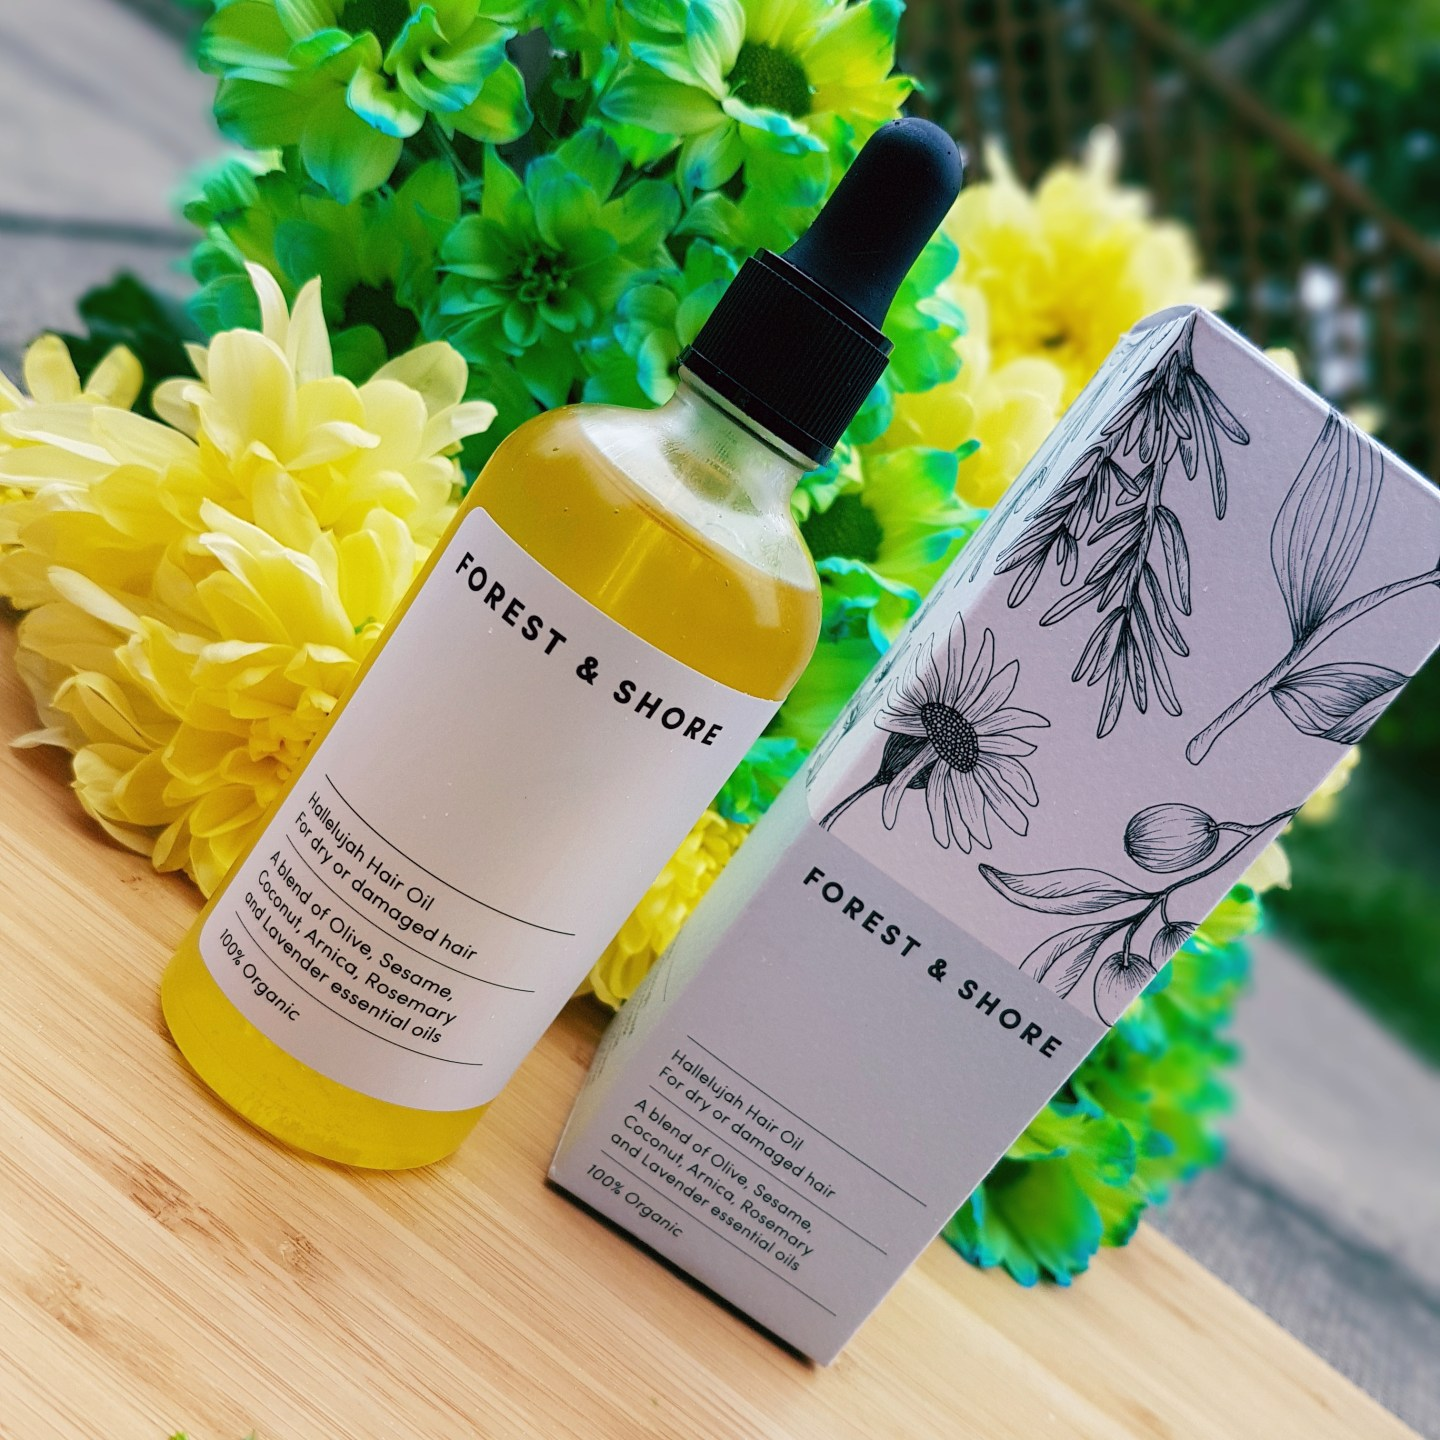 Forest & Shore Hallelujah Hair Oil Review